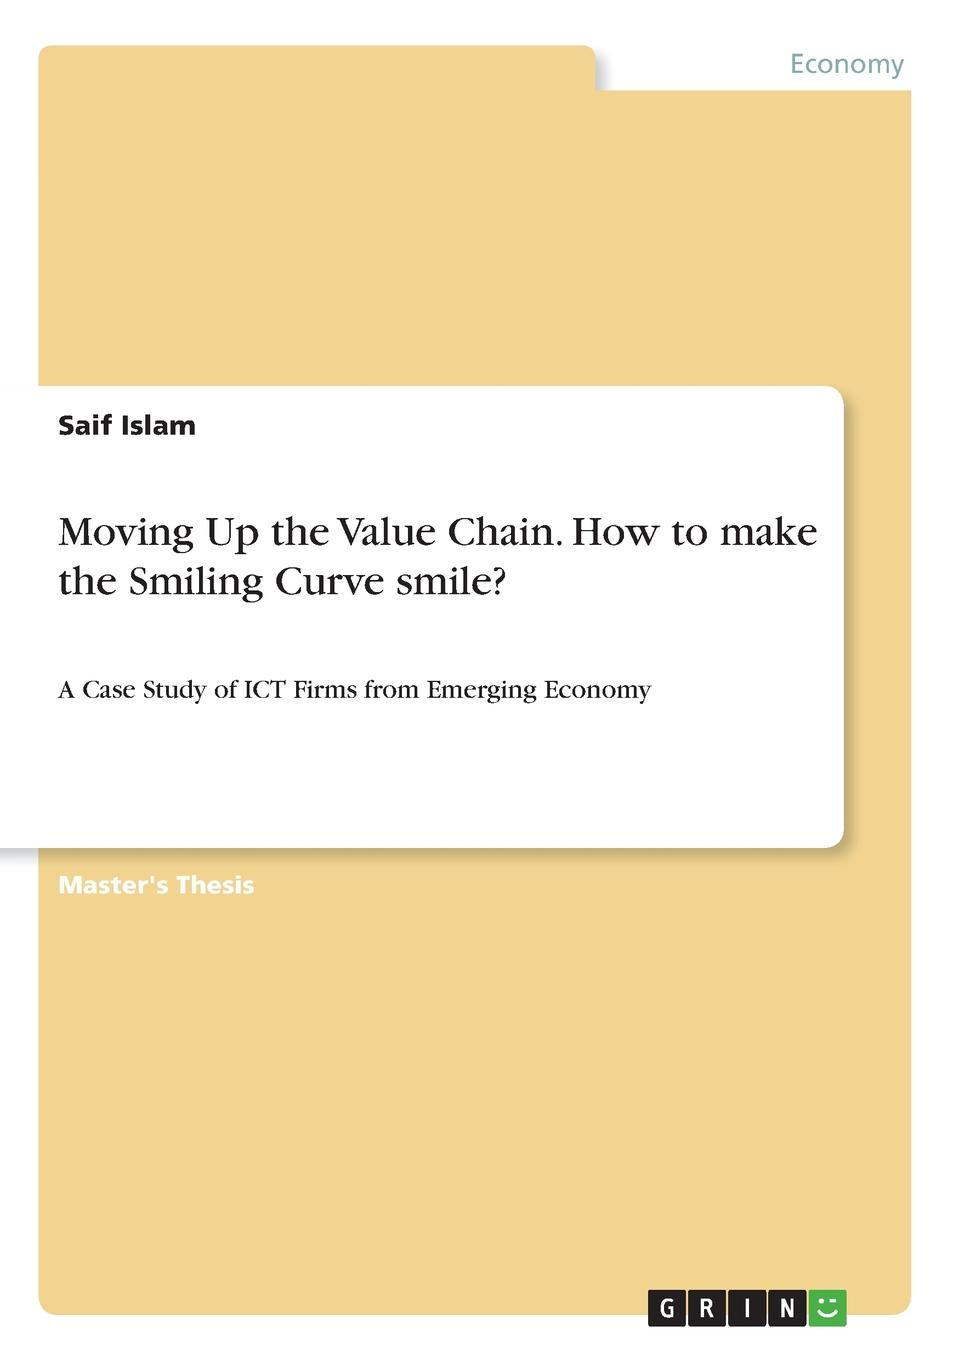 цена на Saif Islam Moving Up the Value Chain. How to make the Smiling Curve smile.